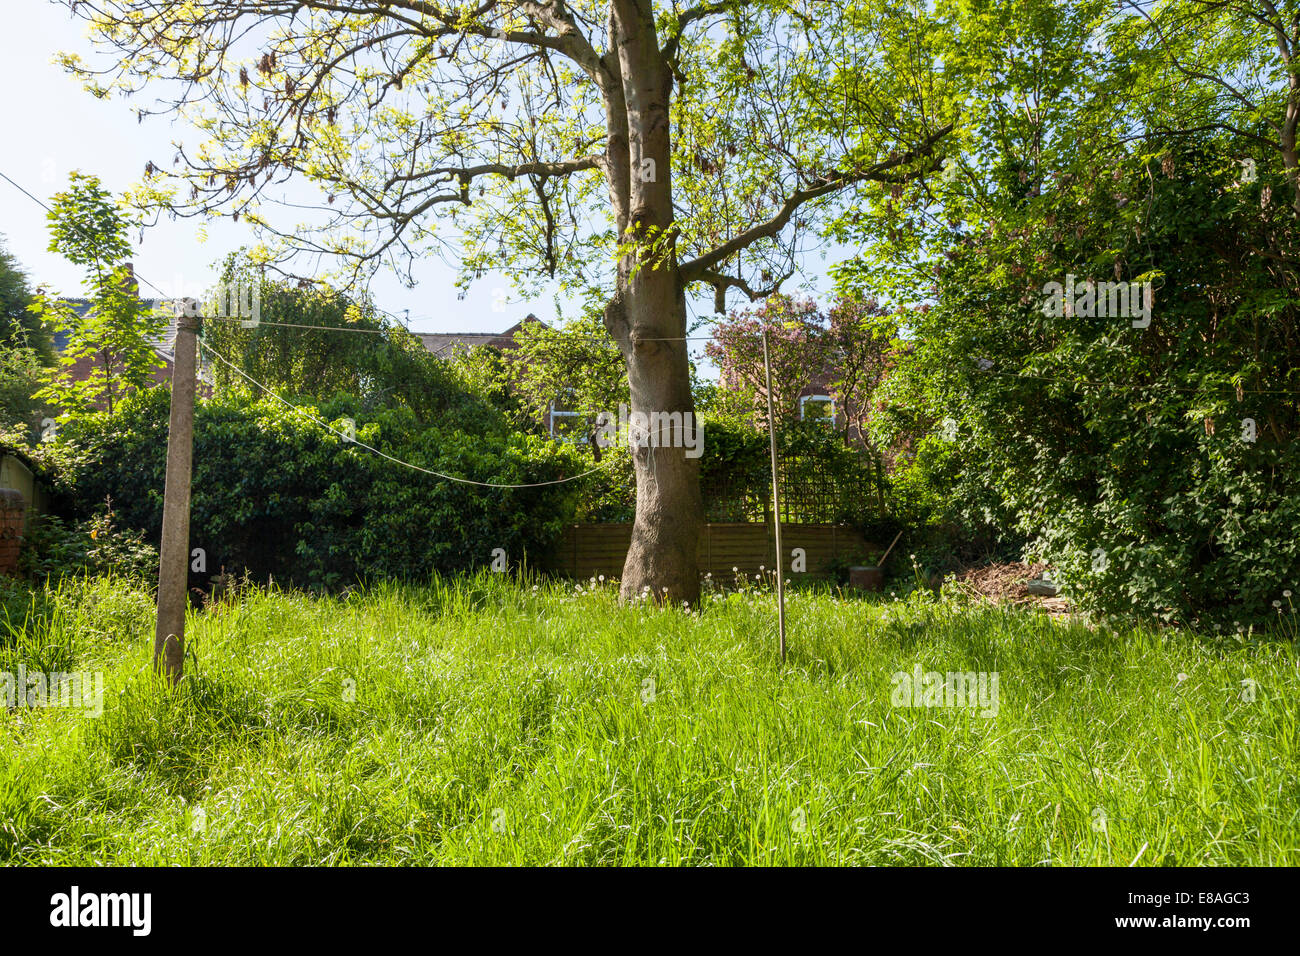 Neglected garden with a lawn of long grass and an untrimmed hedge, England, UK - Stock Image